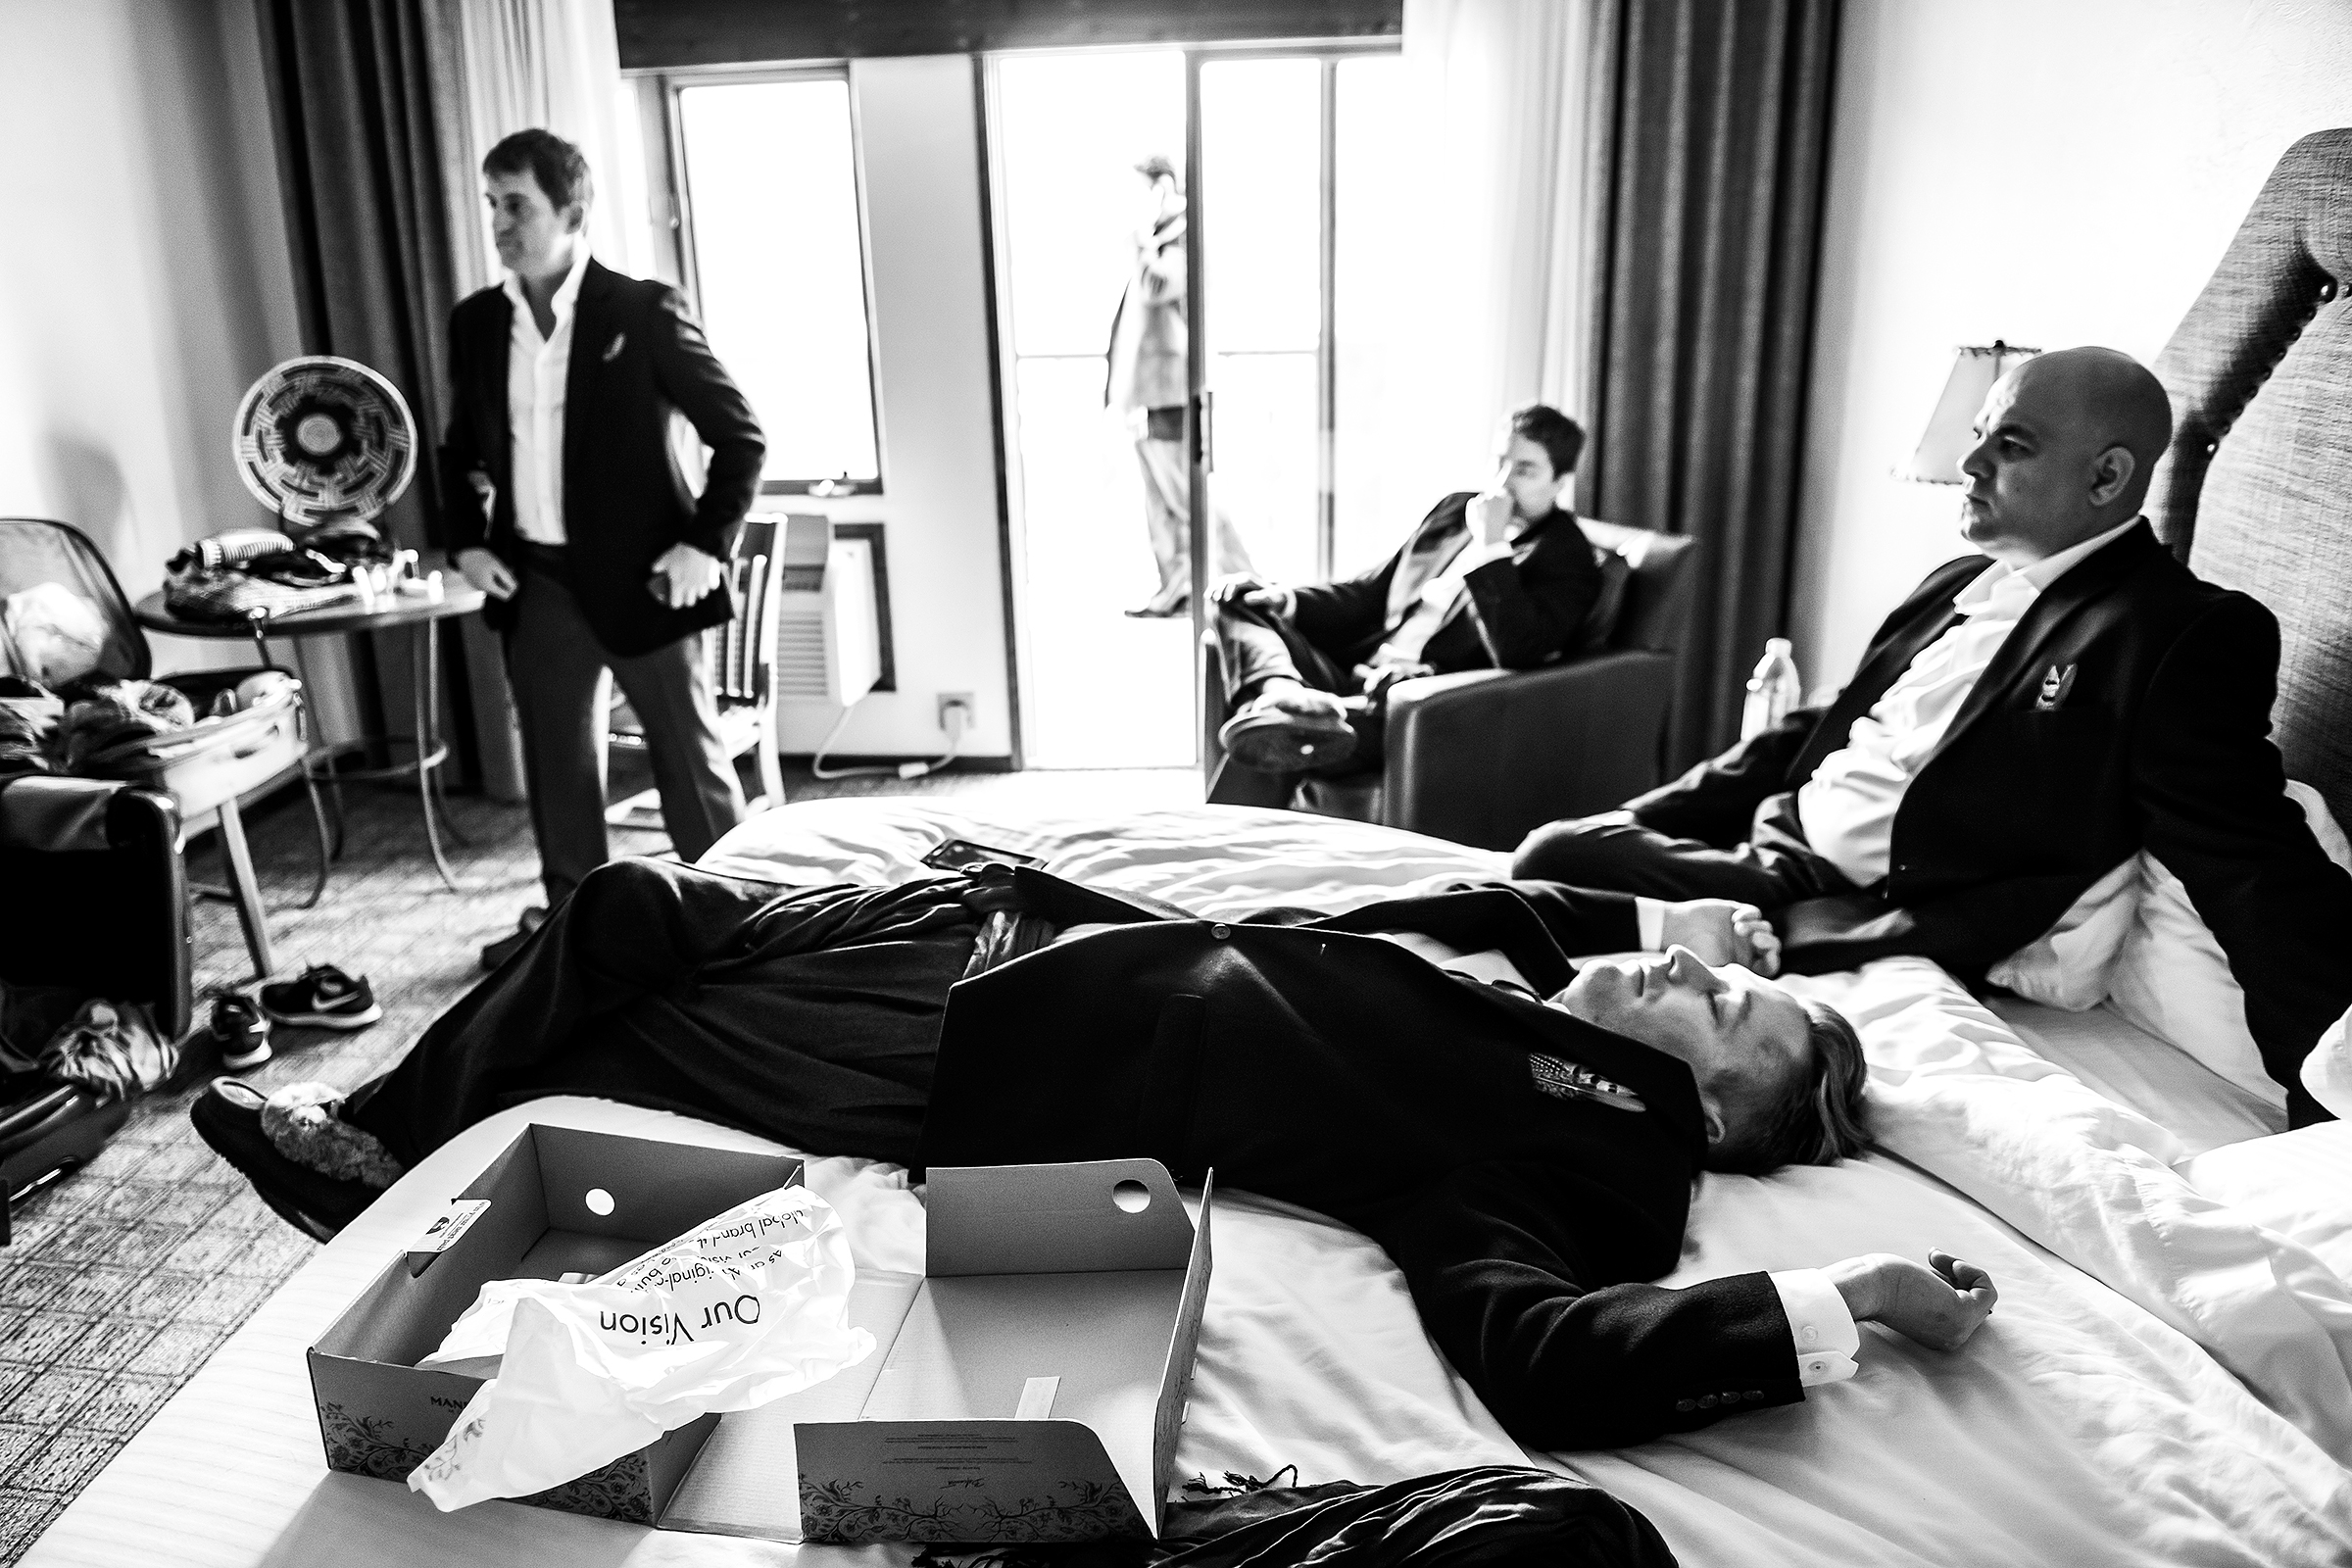 Groom and groomsmen hanging out in room - photo by J. La Plante Photo